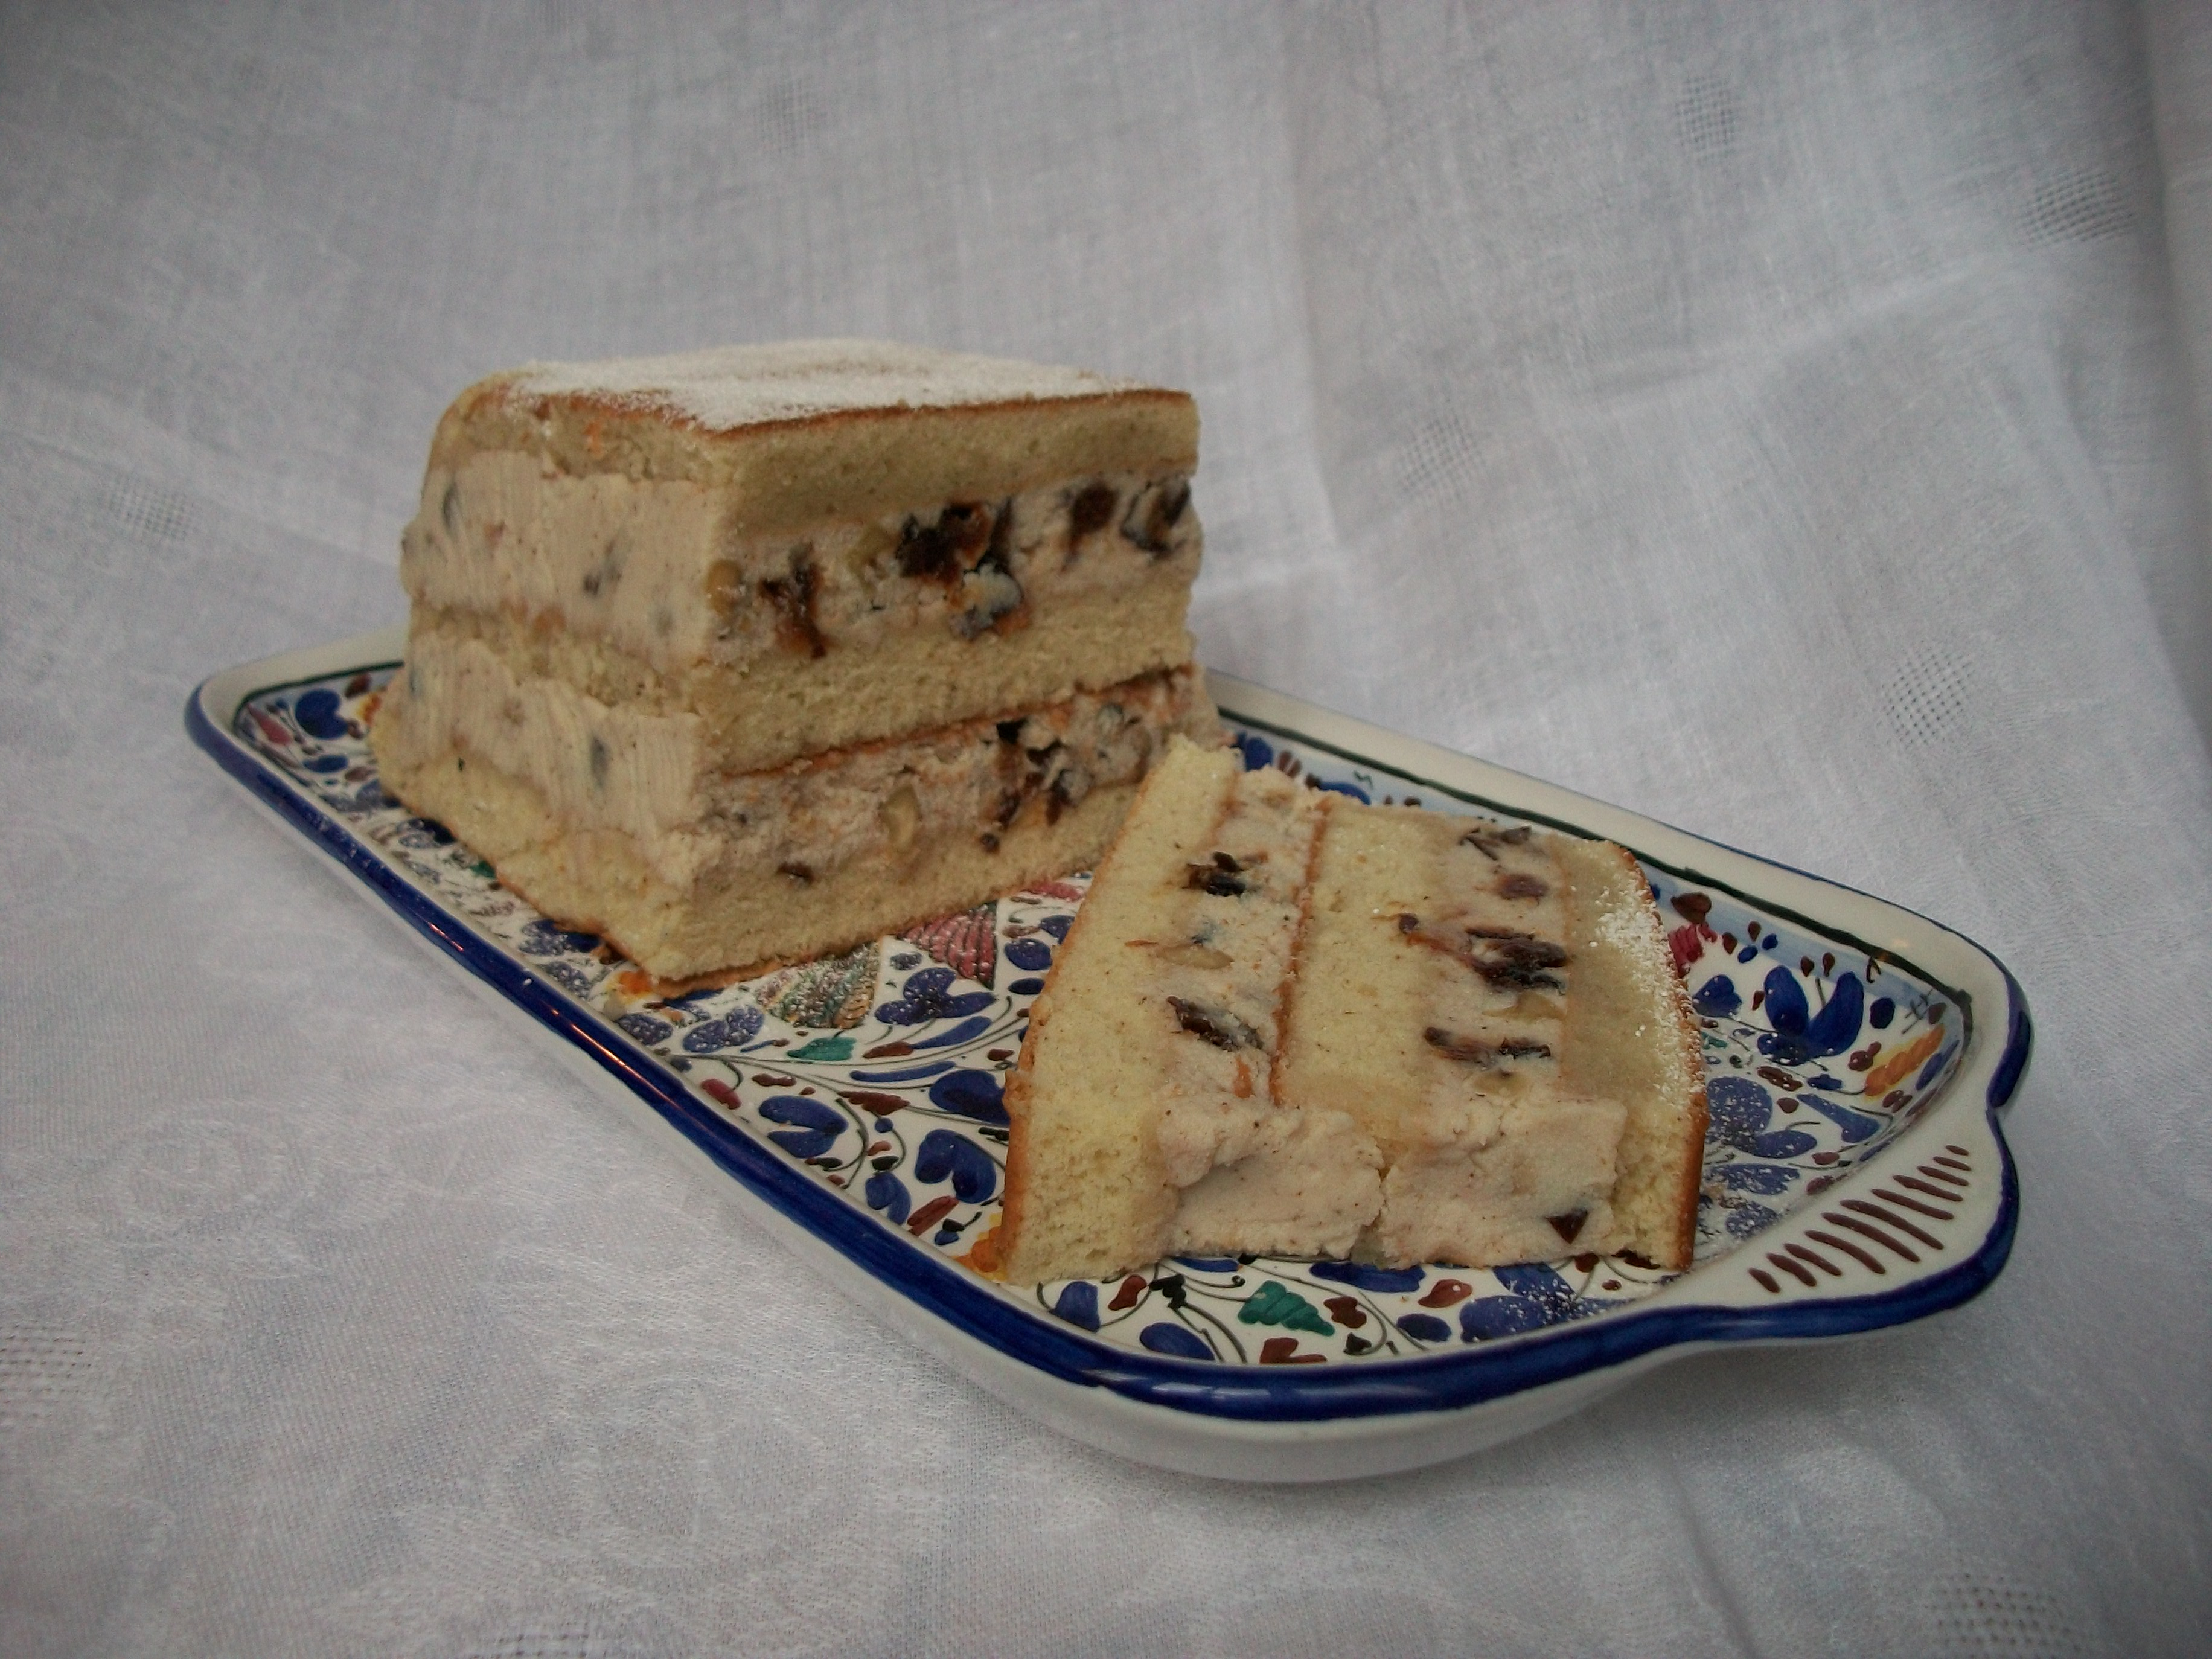 Cognac-y Clove-y Cassata